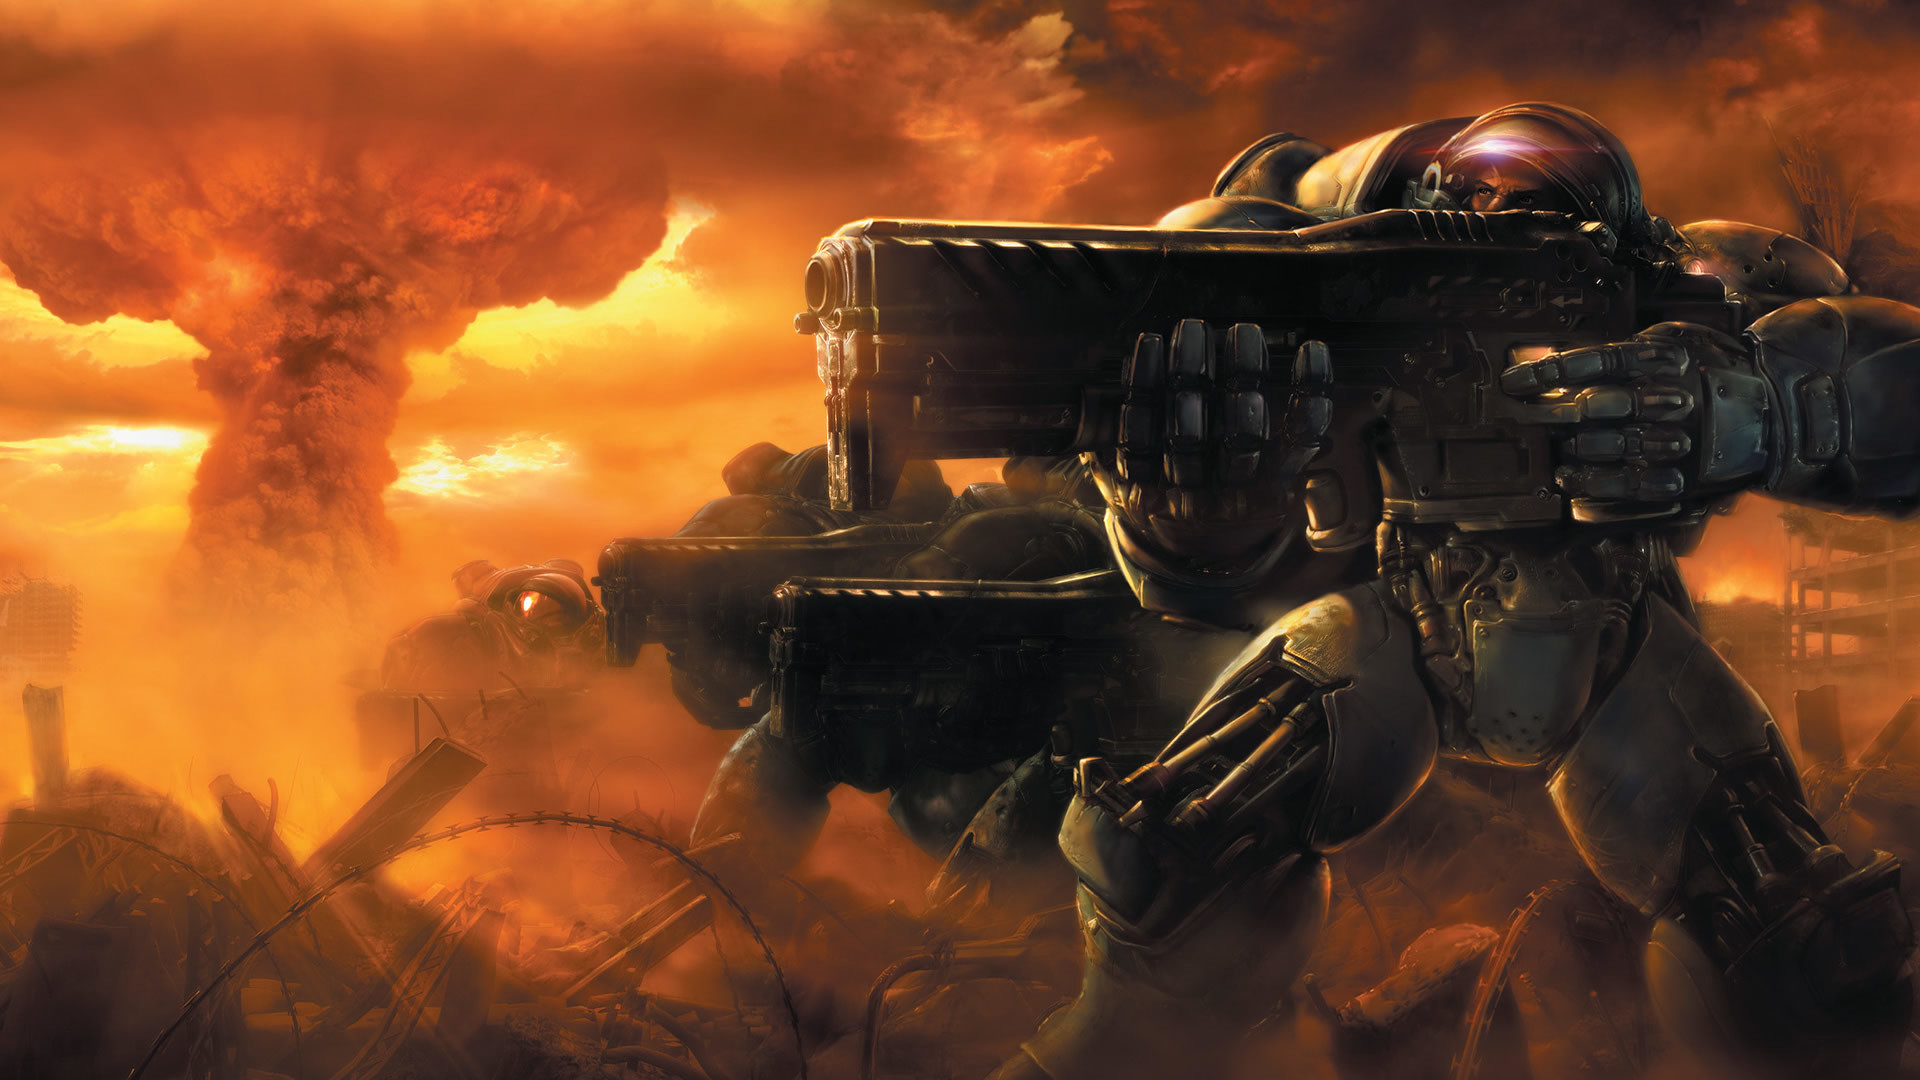 Starcraft Marine Wallpaper